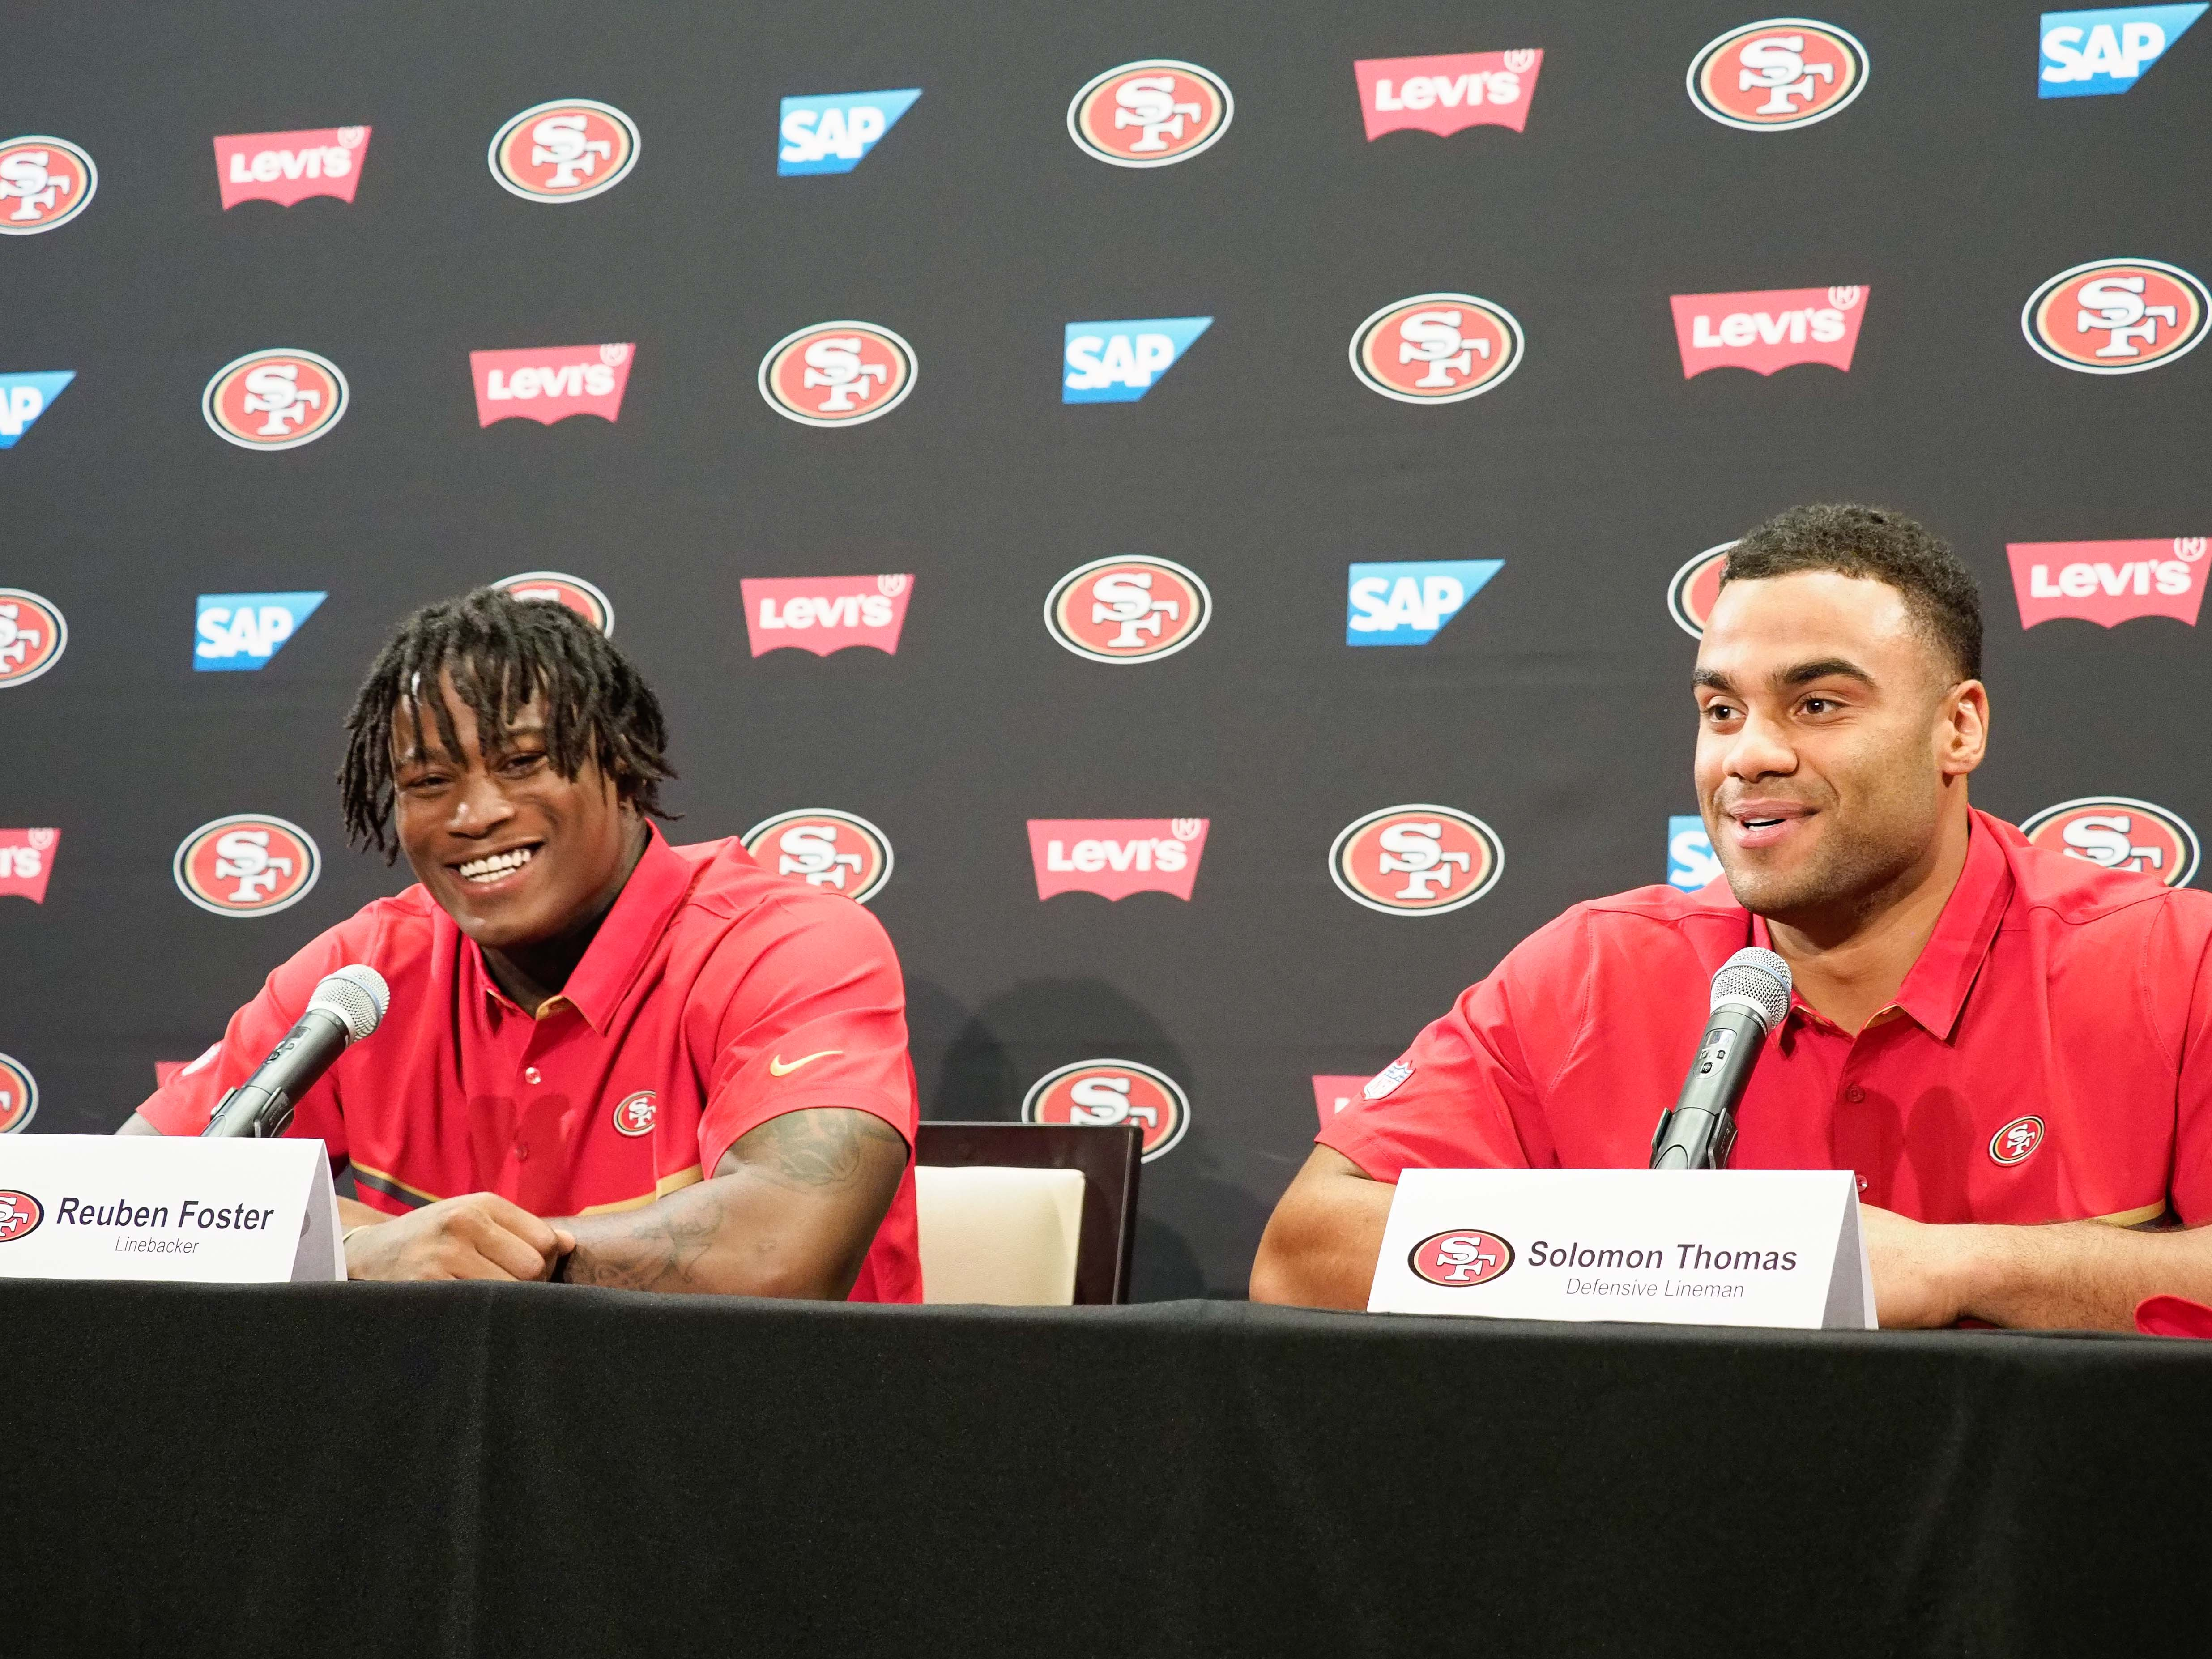 10034583-nfl-san-francisco-49ers-press-conference